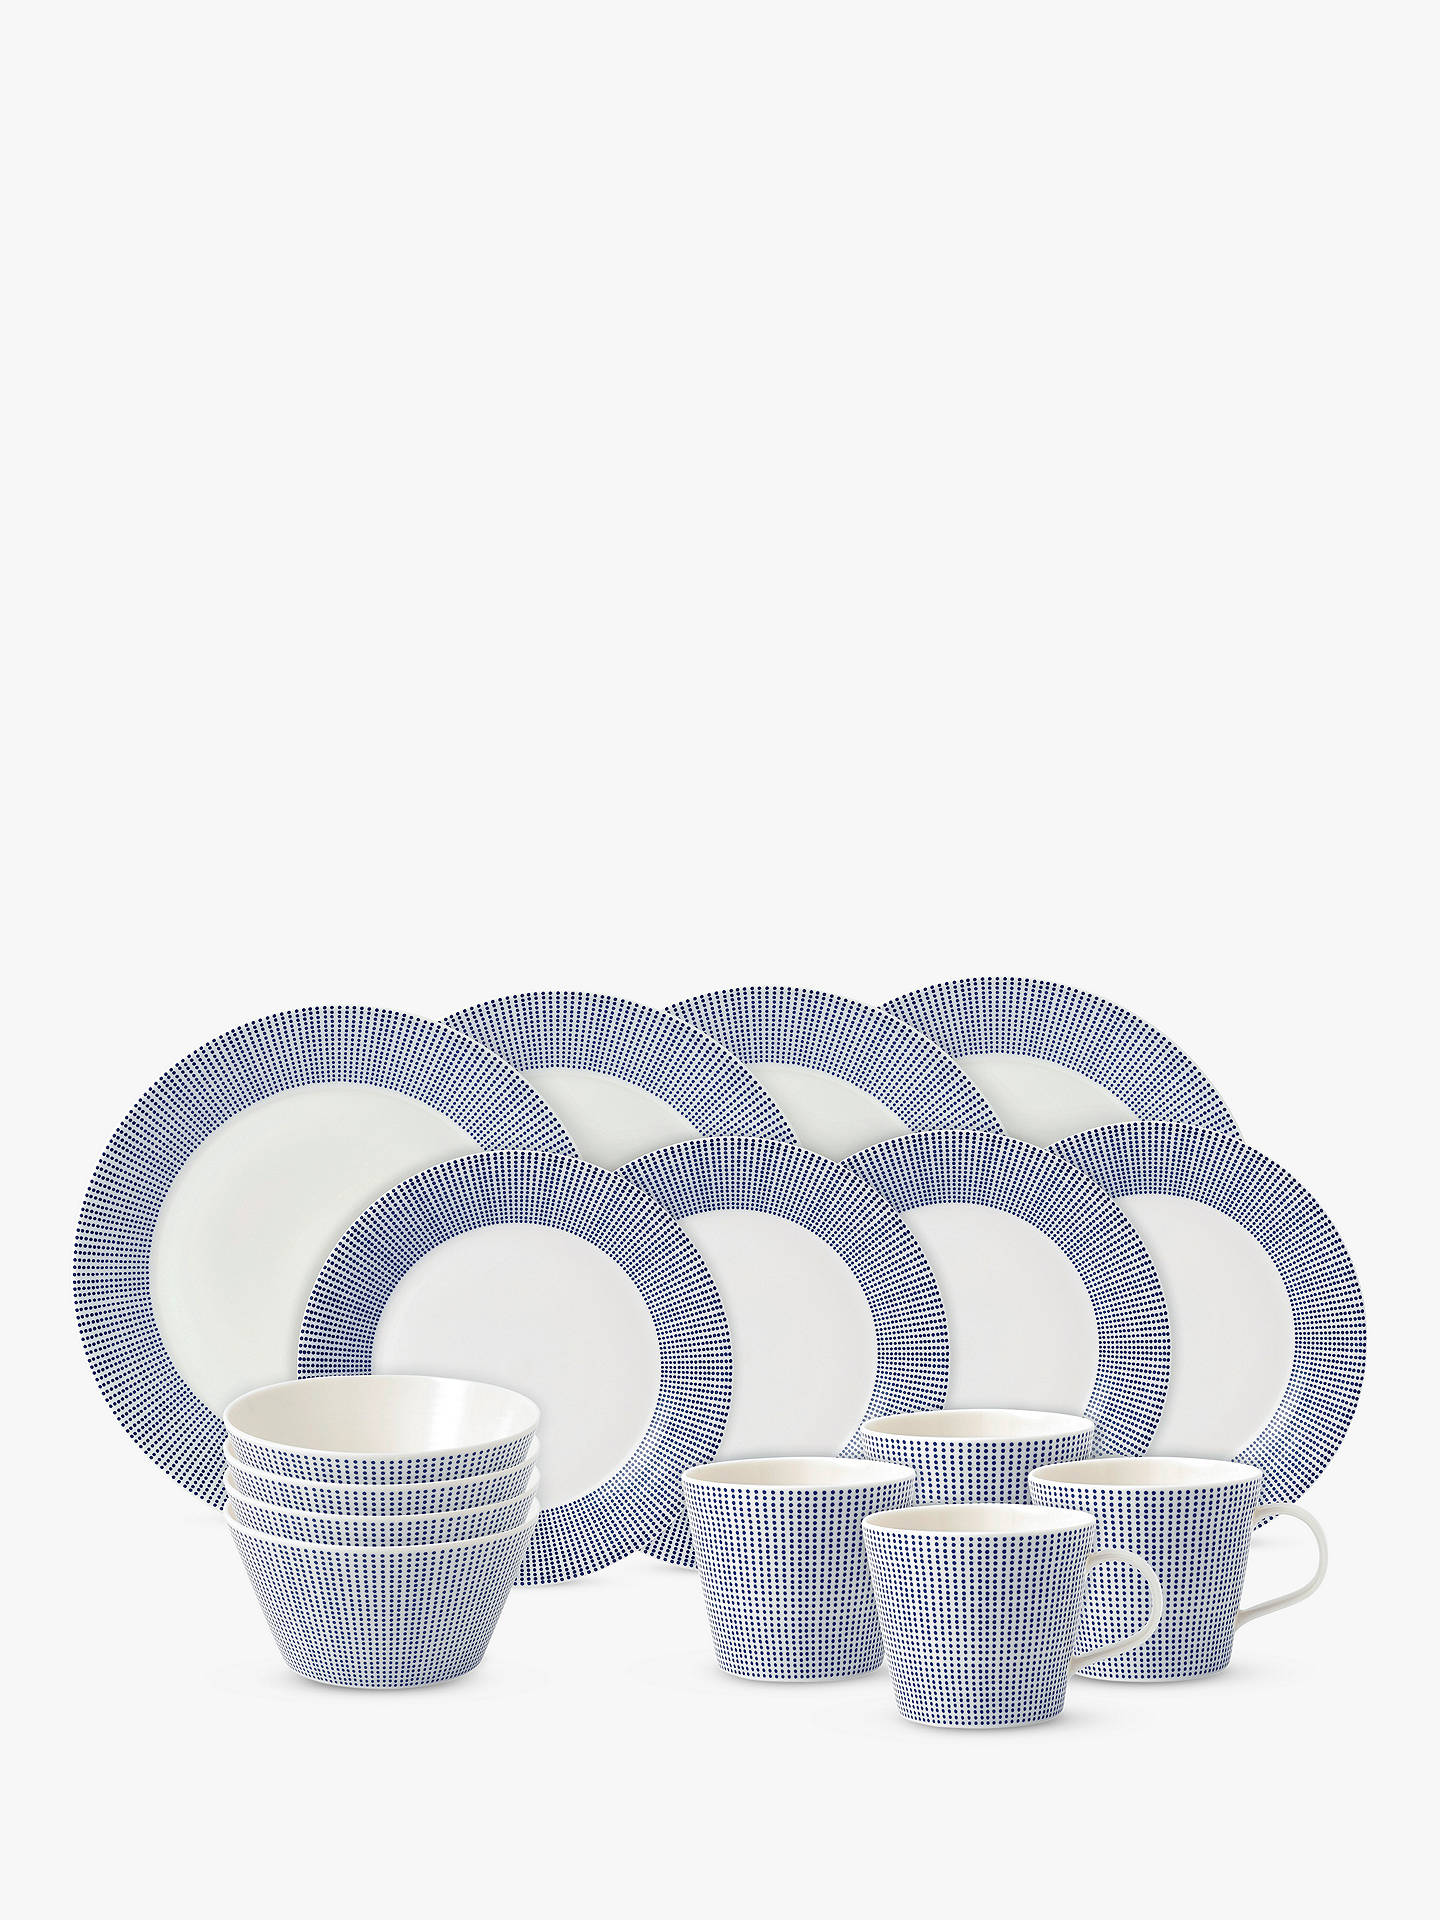 BuyRoyal Doulton Pacific Porcelain China Dinnerware Set, Blue, 16 Pieces Online at johnlewis.com